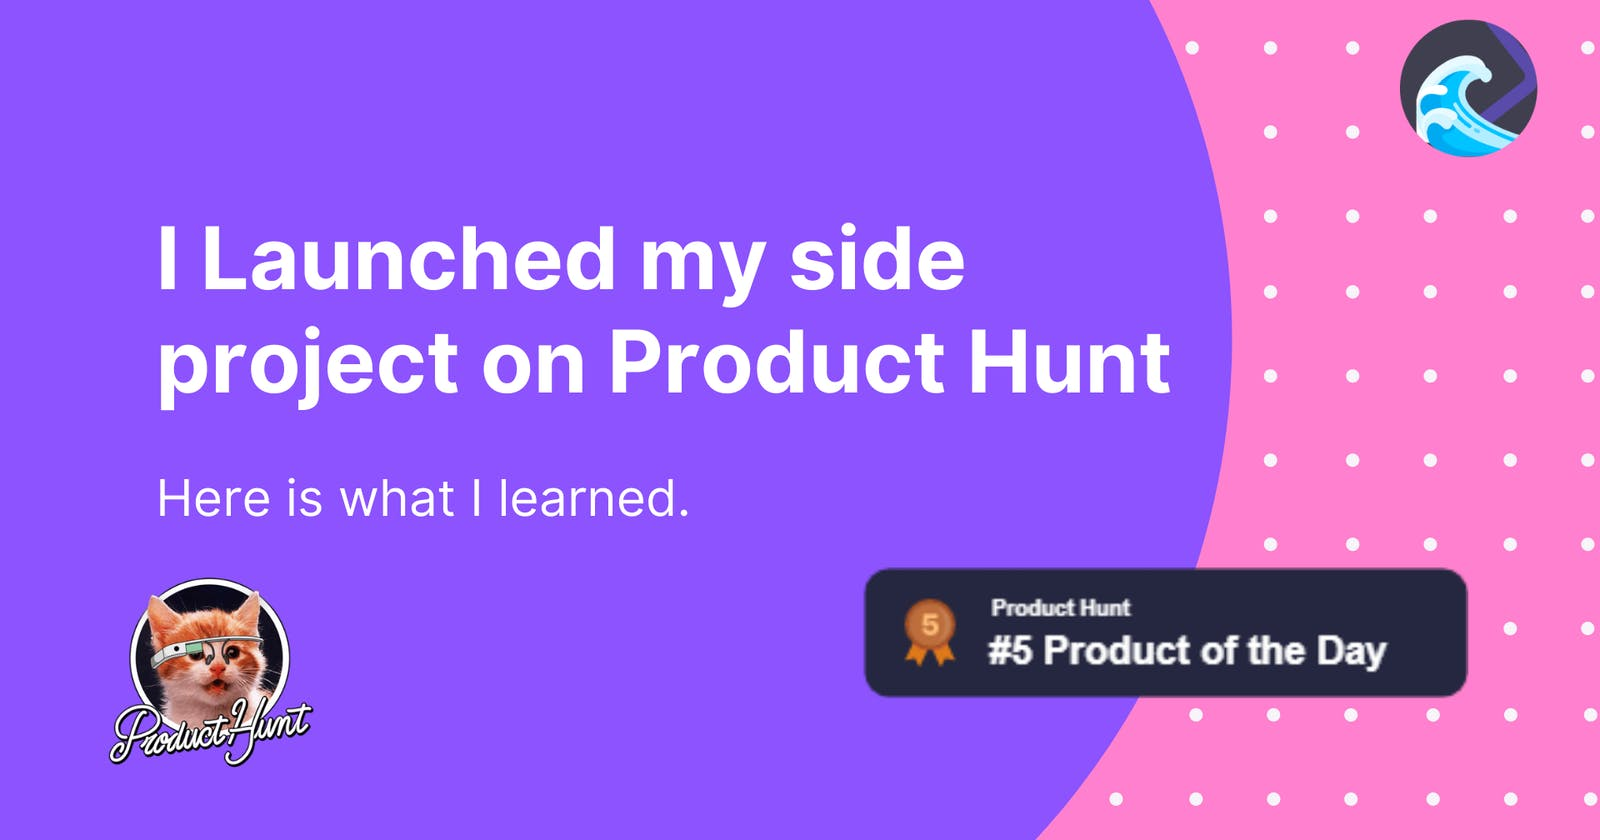 I Launched my side project on Product Hunt, here is what I learned.